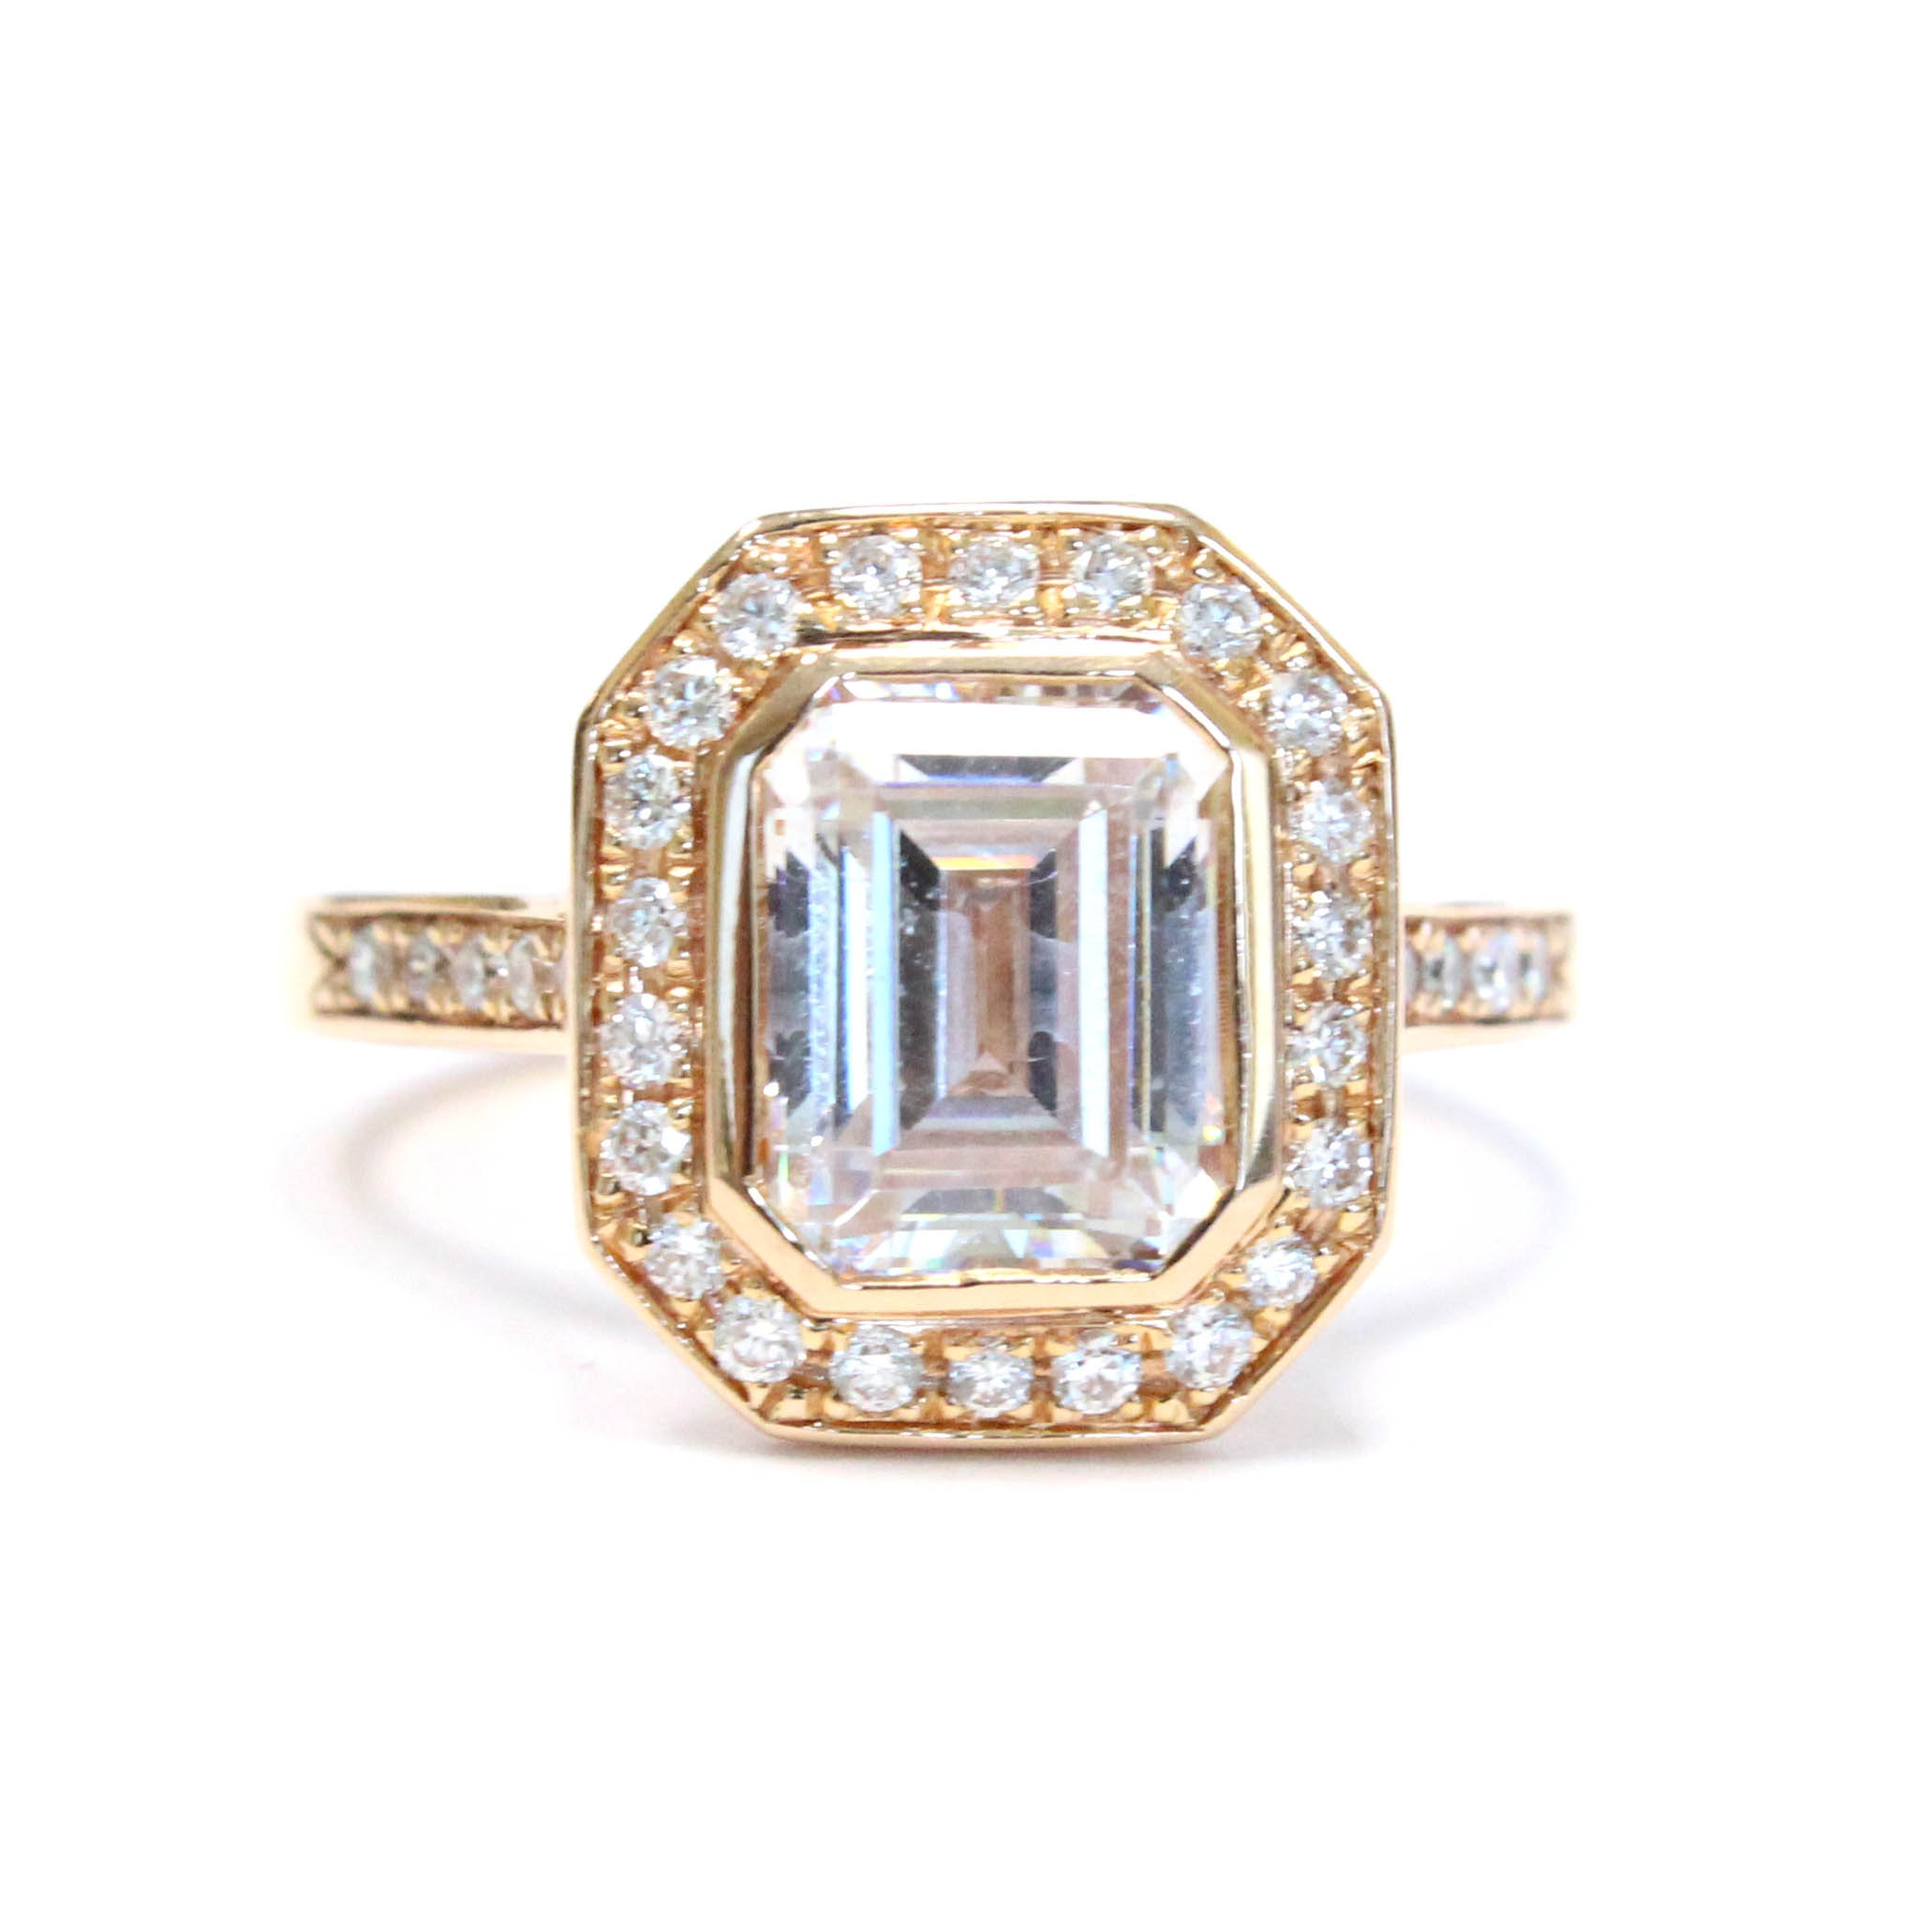 18K Pink Gold Ring with Diamonds and Cubic Zirconia